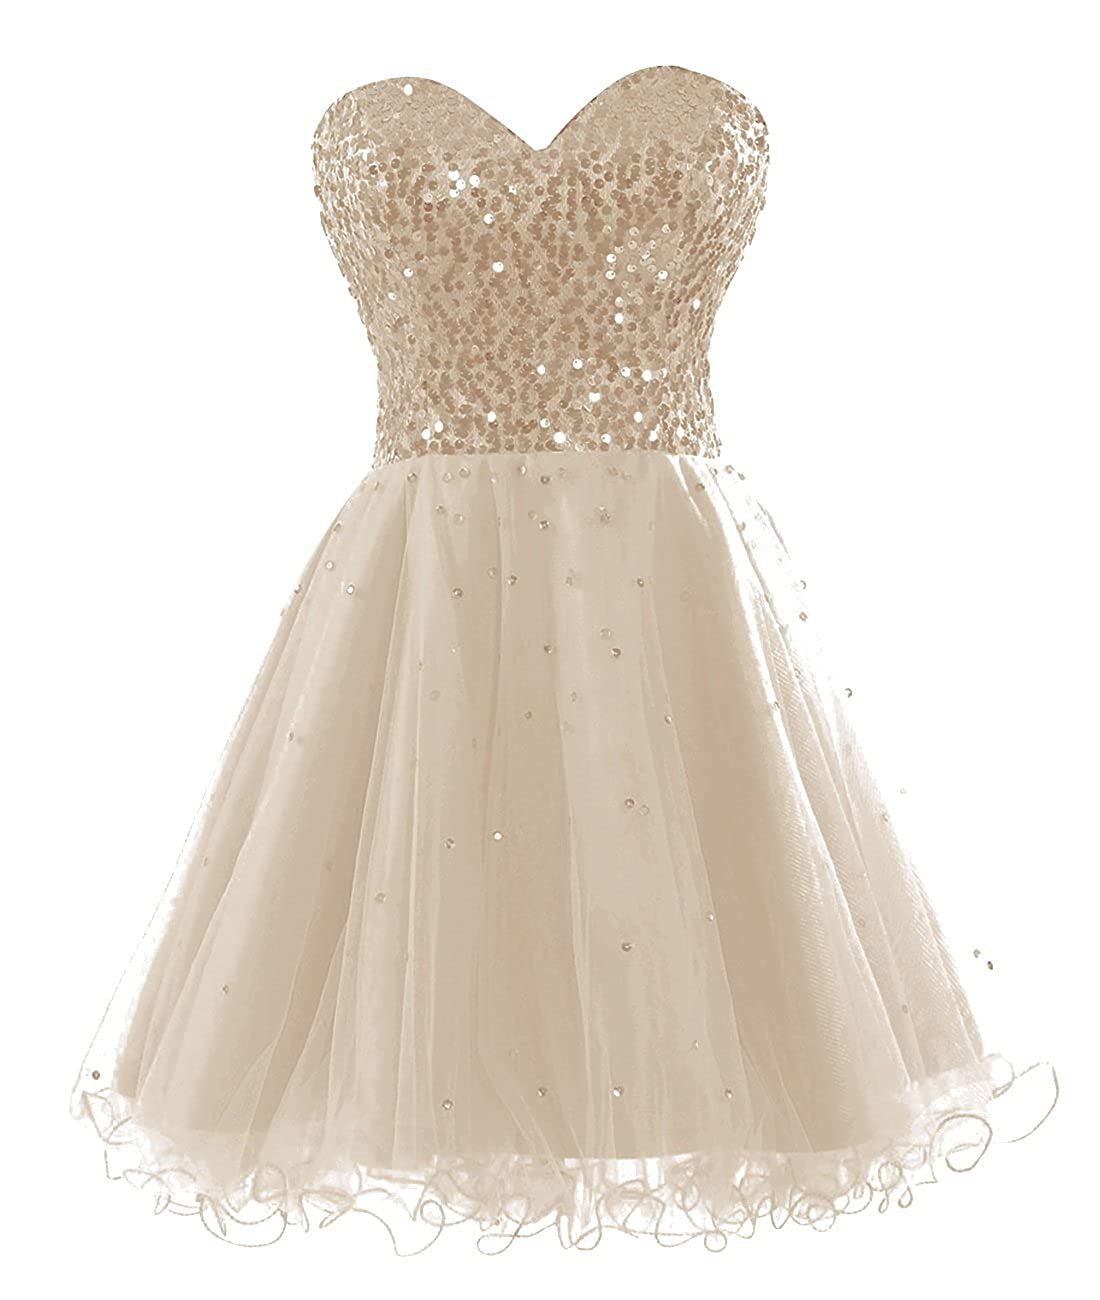 Champagne Bess Bridal Women's Sequined Lace Up Tulle Short Prom Homecoming Dresses